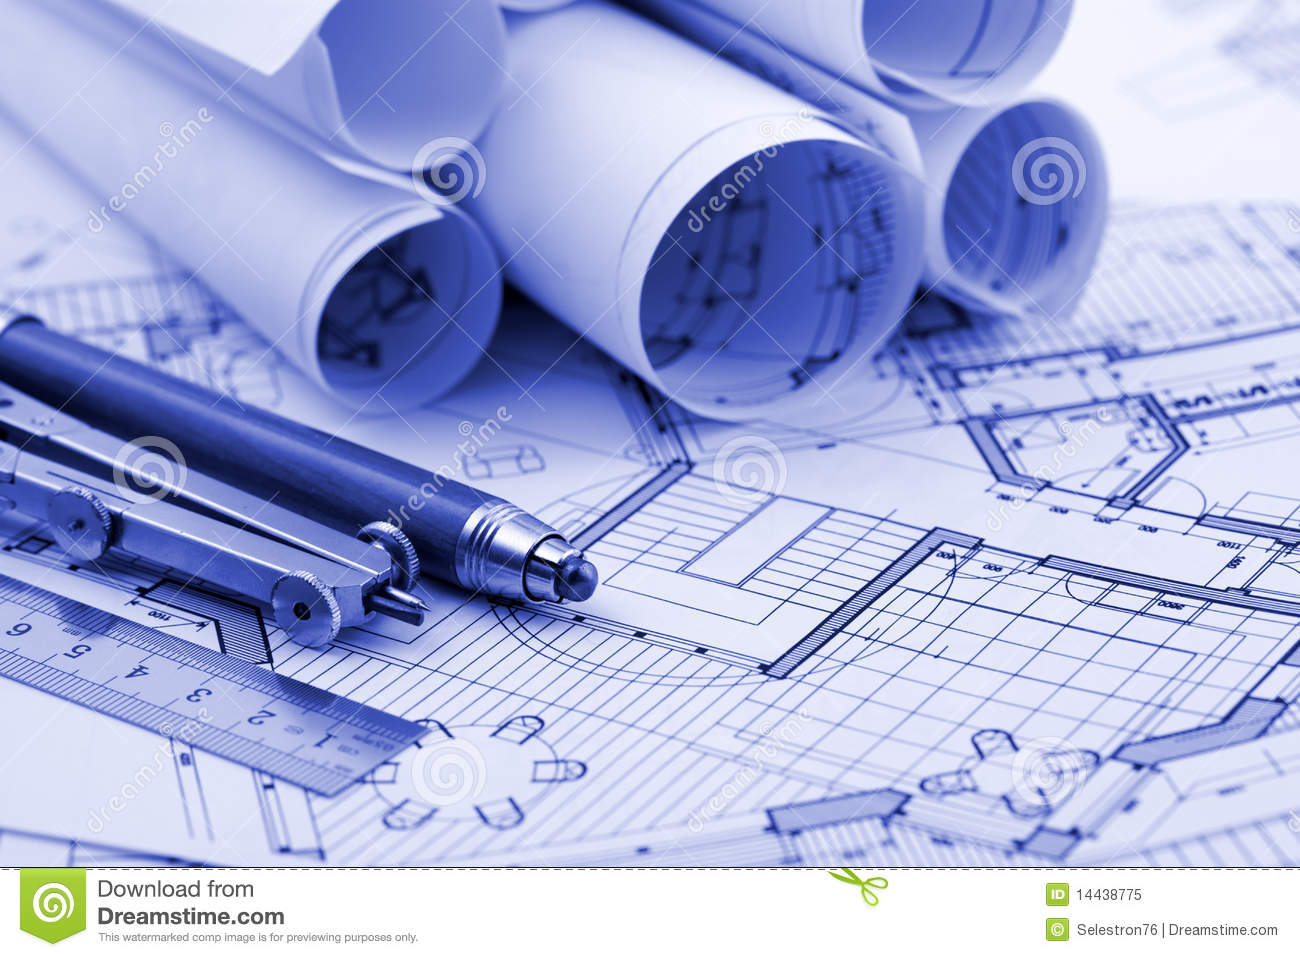 Rolls of architecture blueprint work tools stock image image of download comp malvernweather Image collections